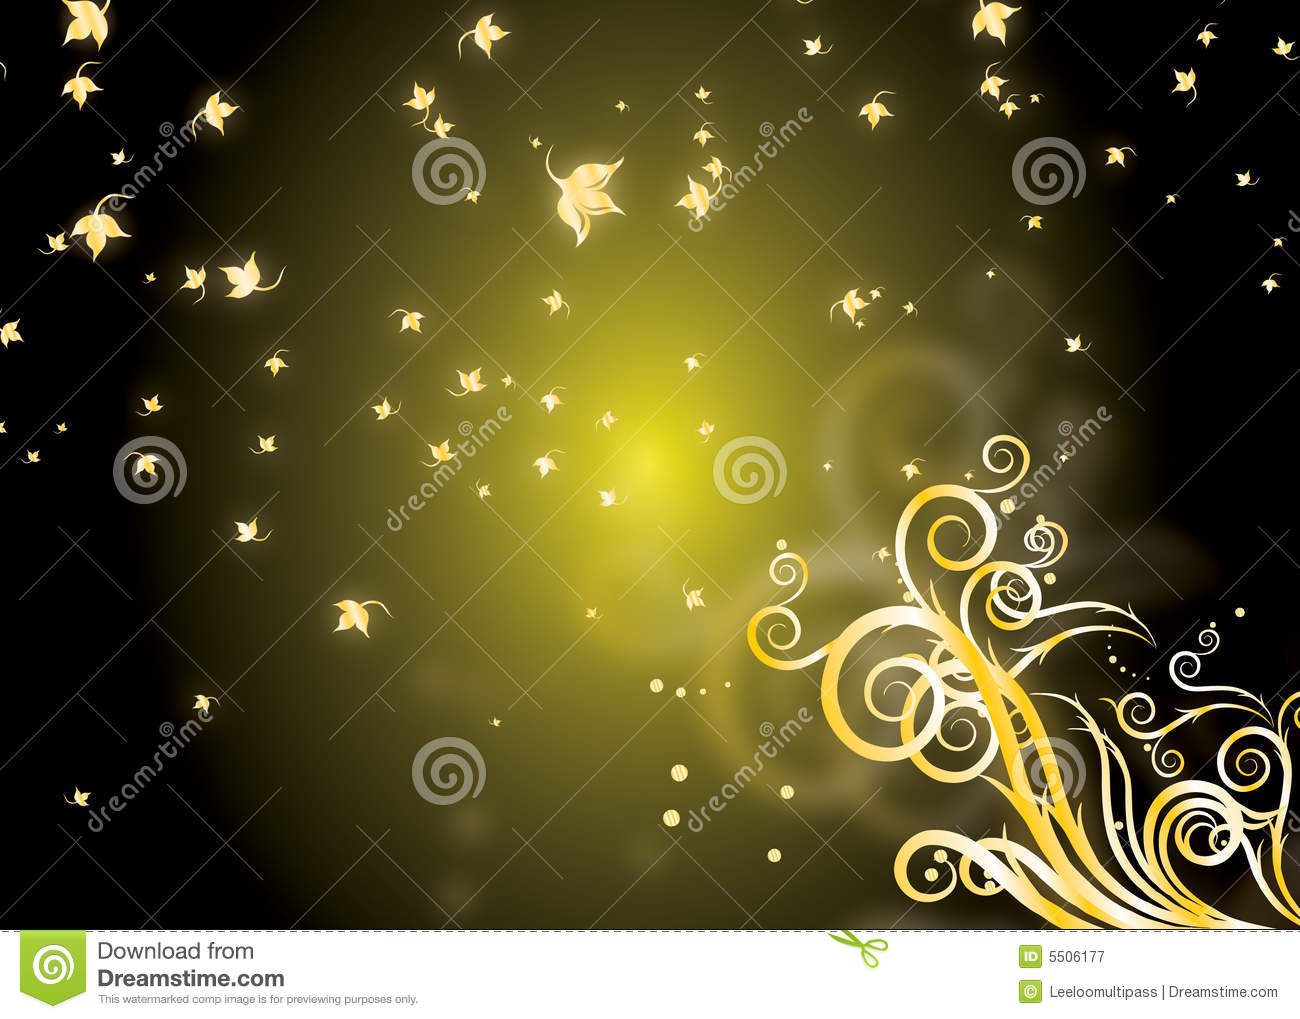 Dreamy Background Royalty Free Stock Photography - Image ...